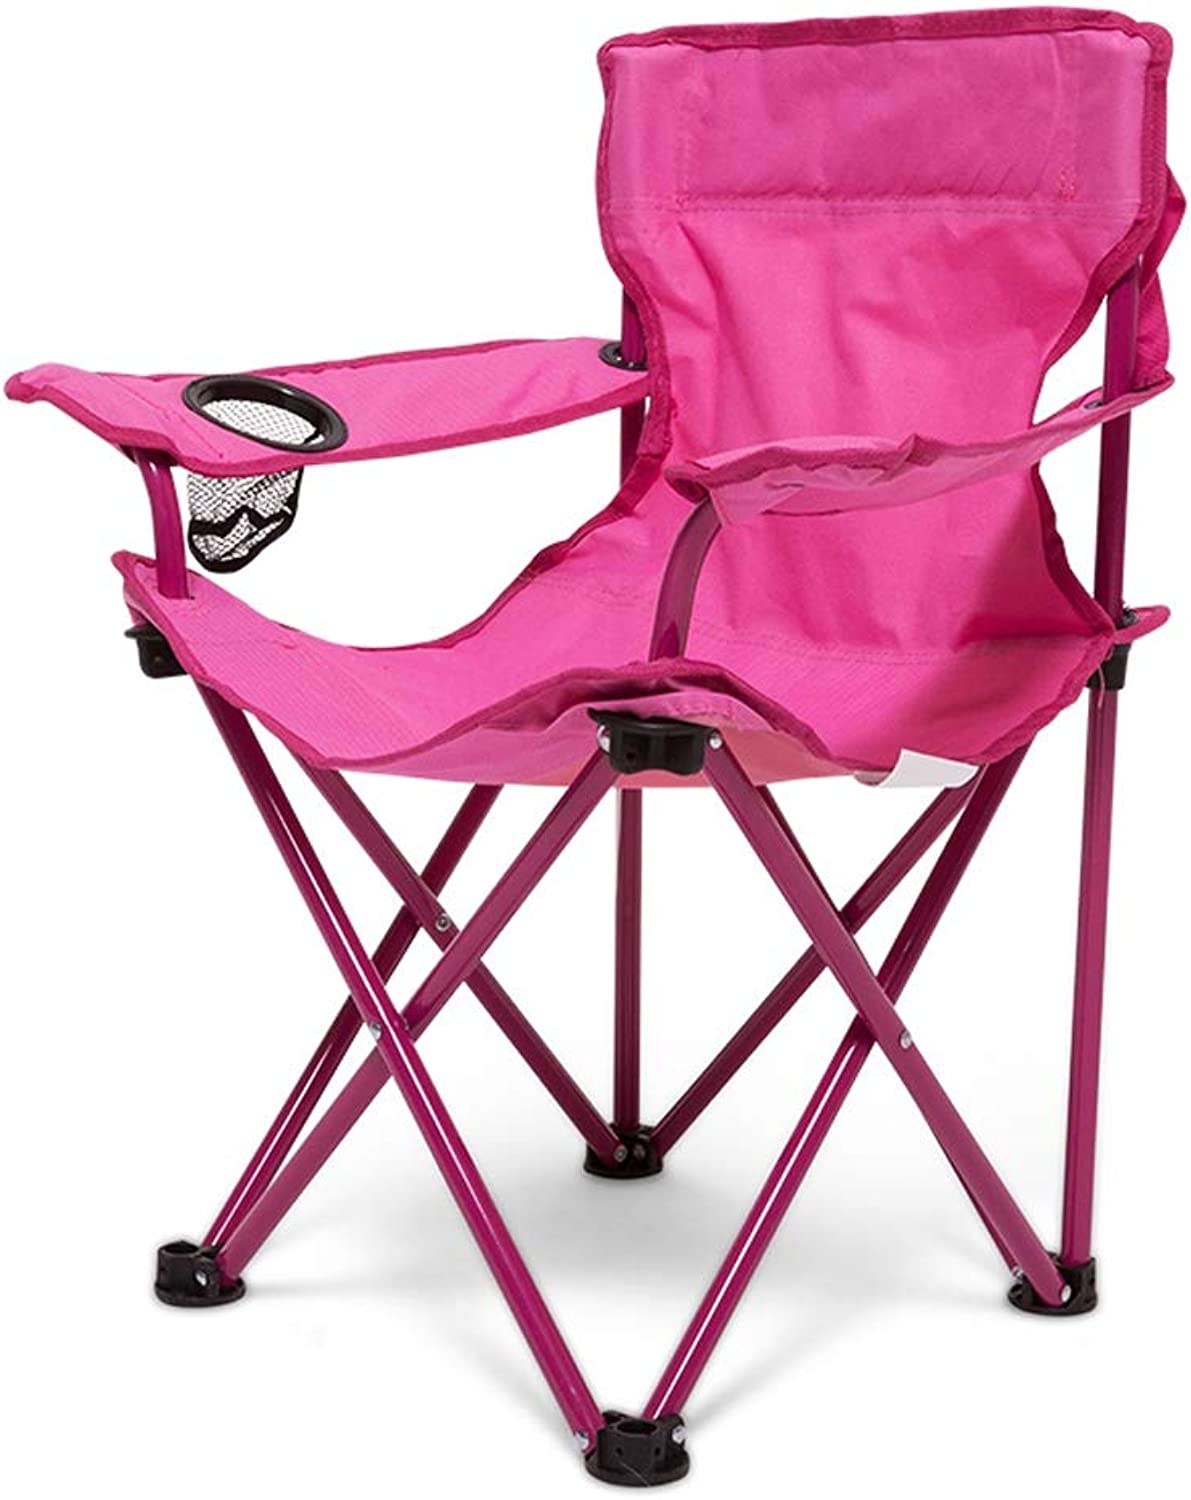 RFJJAL Garden Deluxe Folding High Back Camping Chair Fishing Picnic Beach Foldable Seat with Cup Holder (color   Pink)